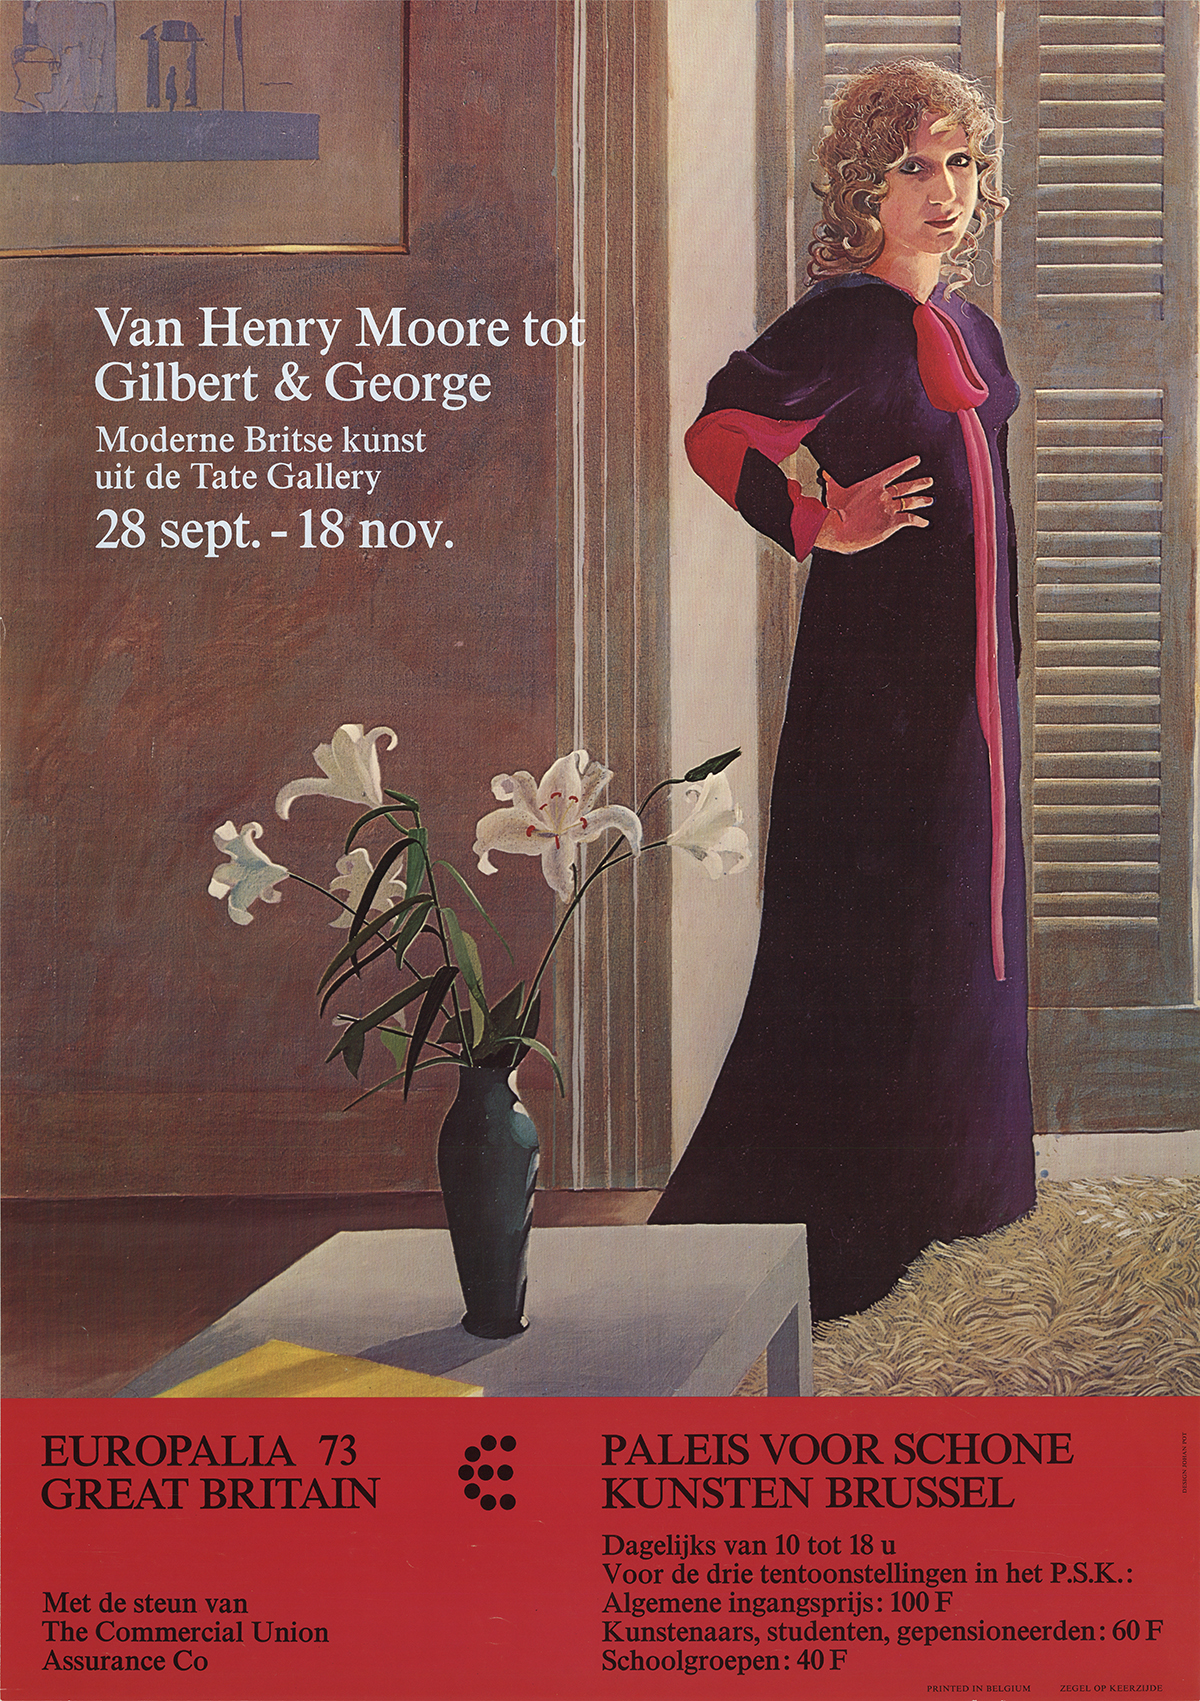 David Hockney-Van Henry Moore tot Gilbert & George-1973 Poster Hockney, David Fair